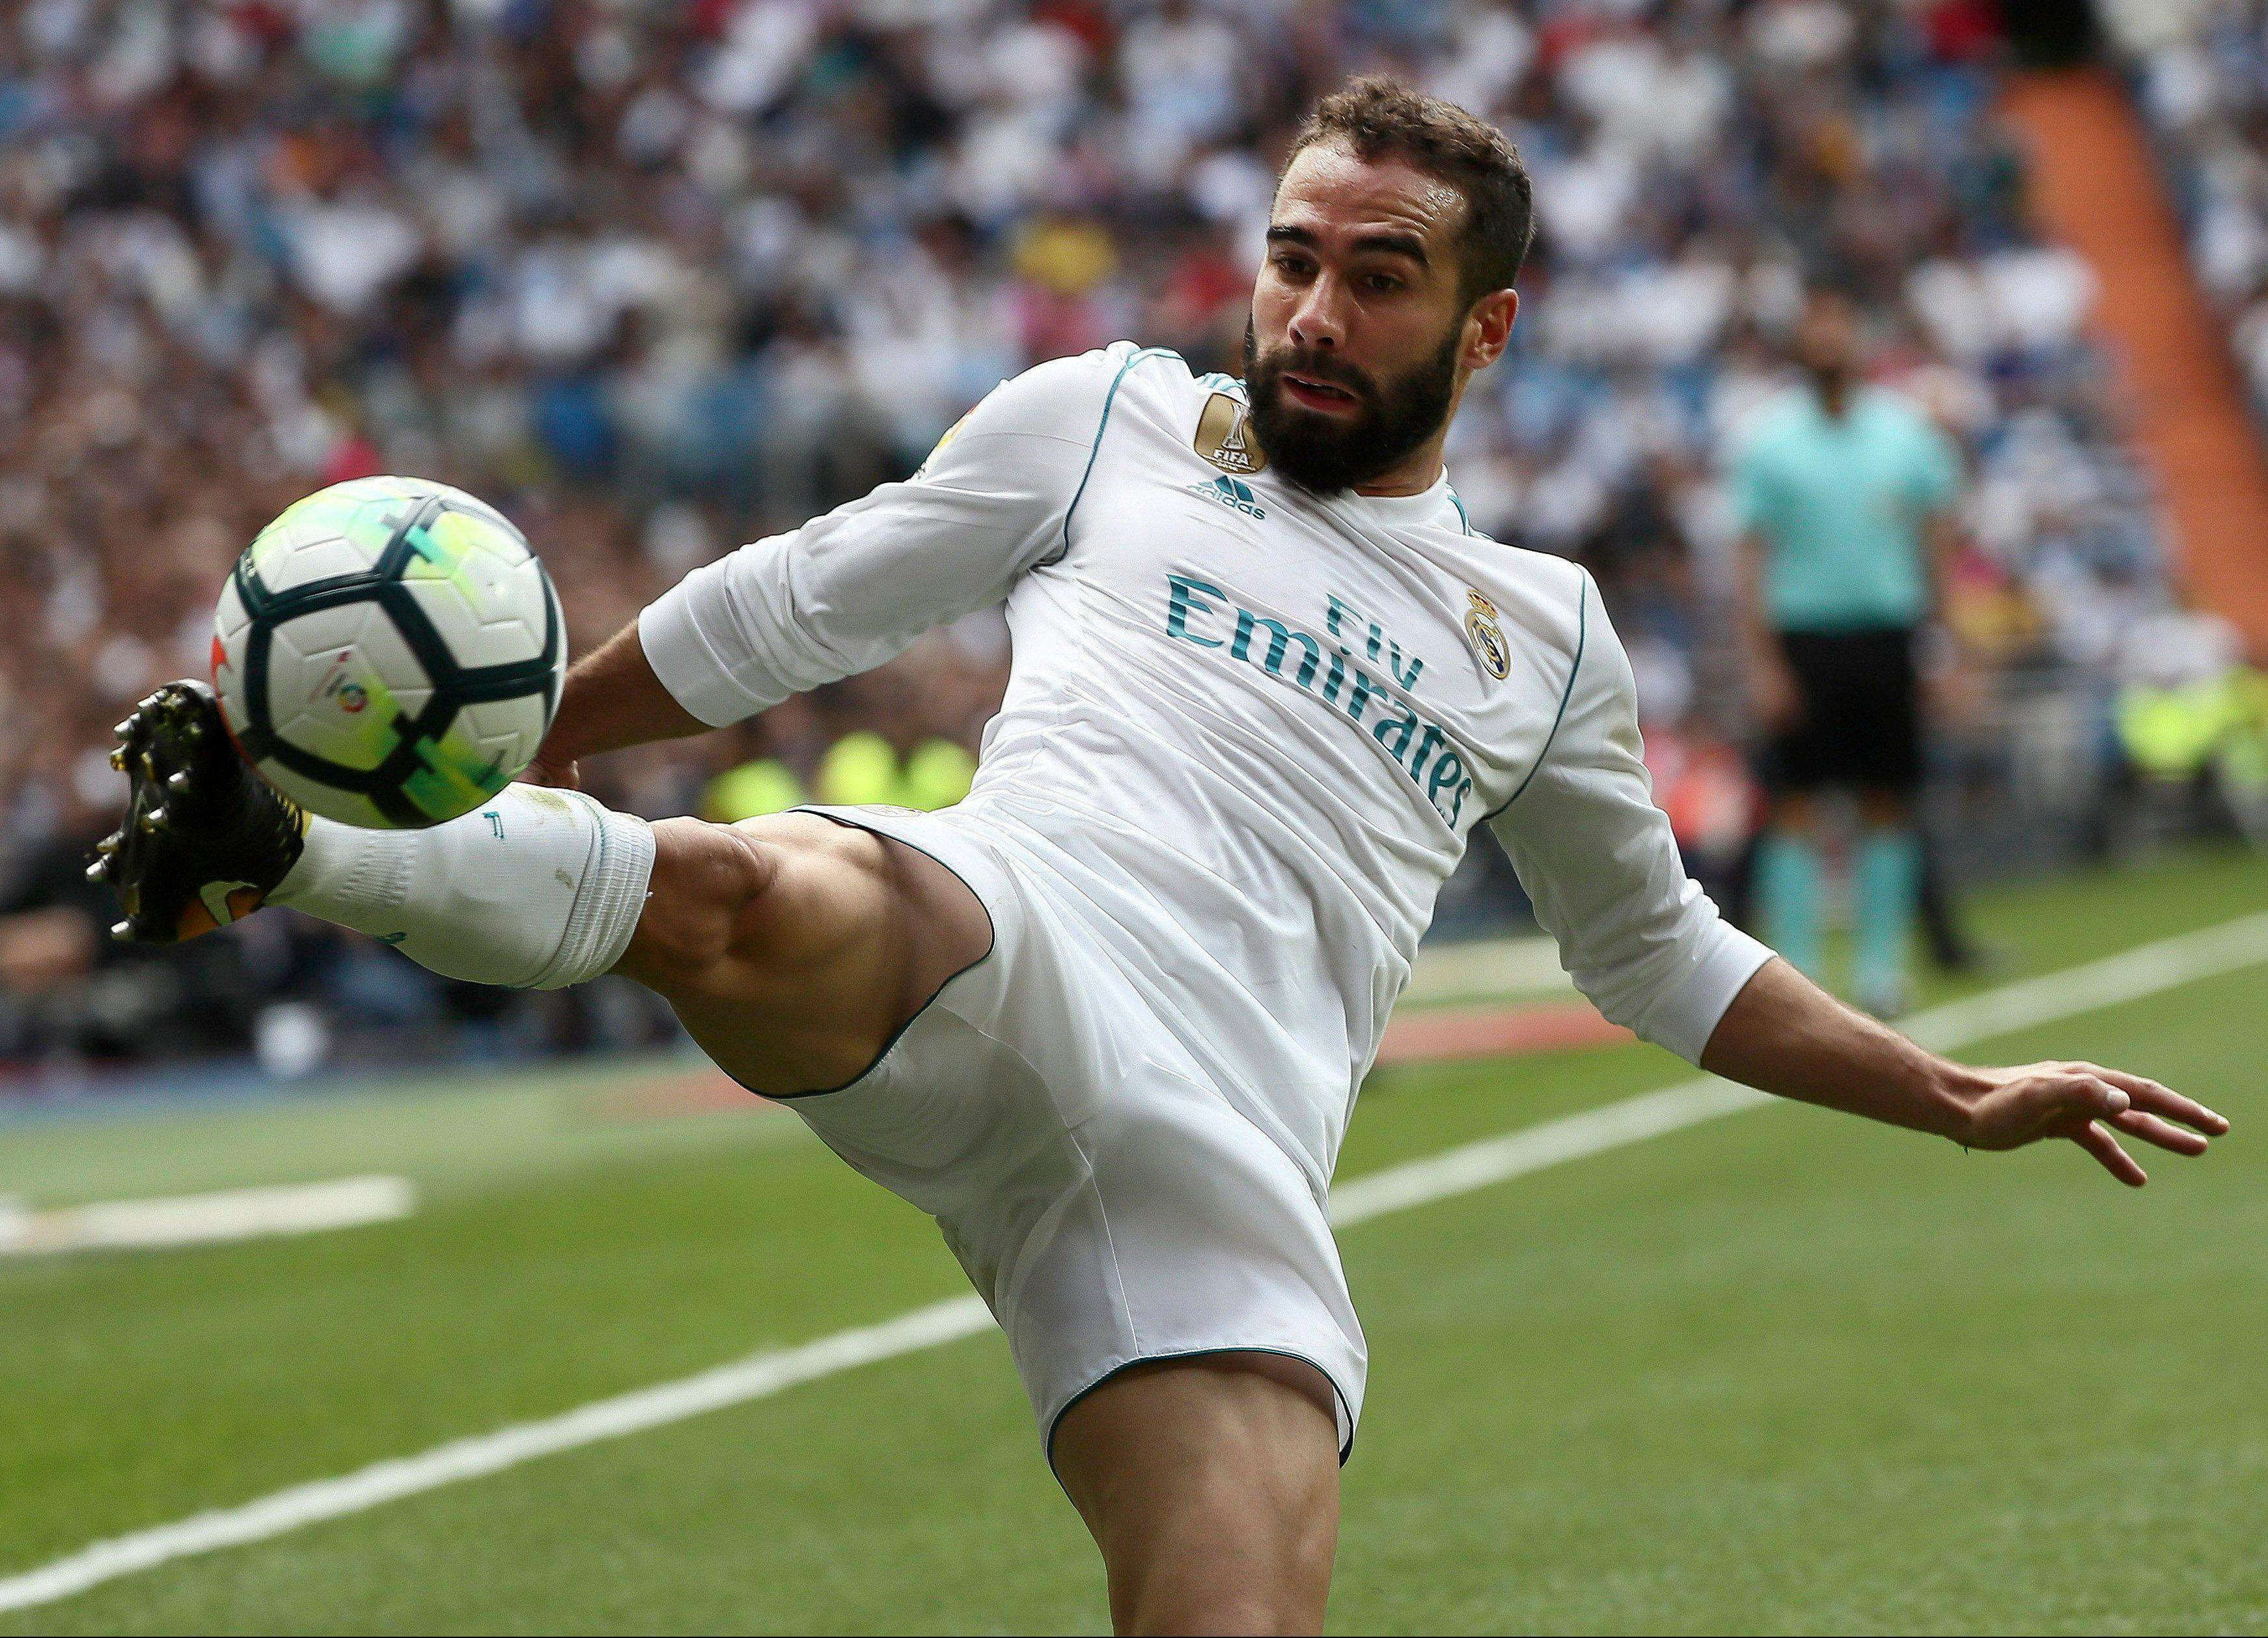 Right-back Dani Carvajal joined Real four years ago and is set to stay until 2022